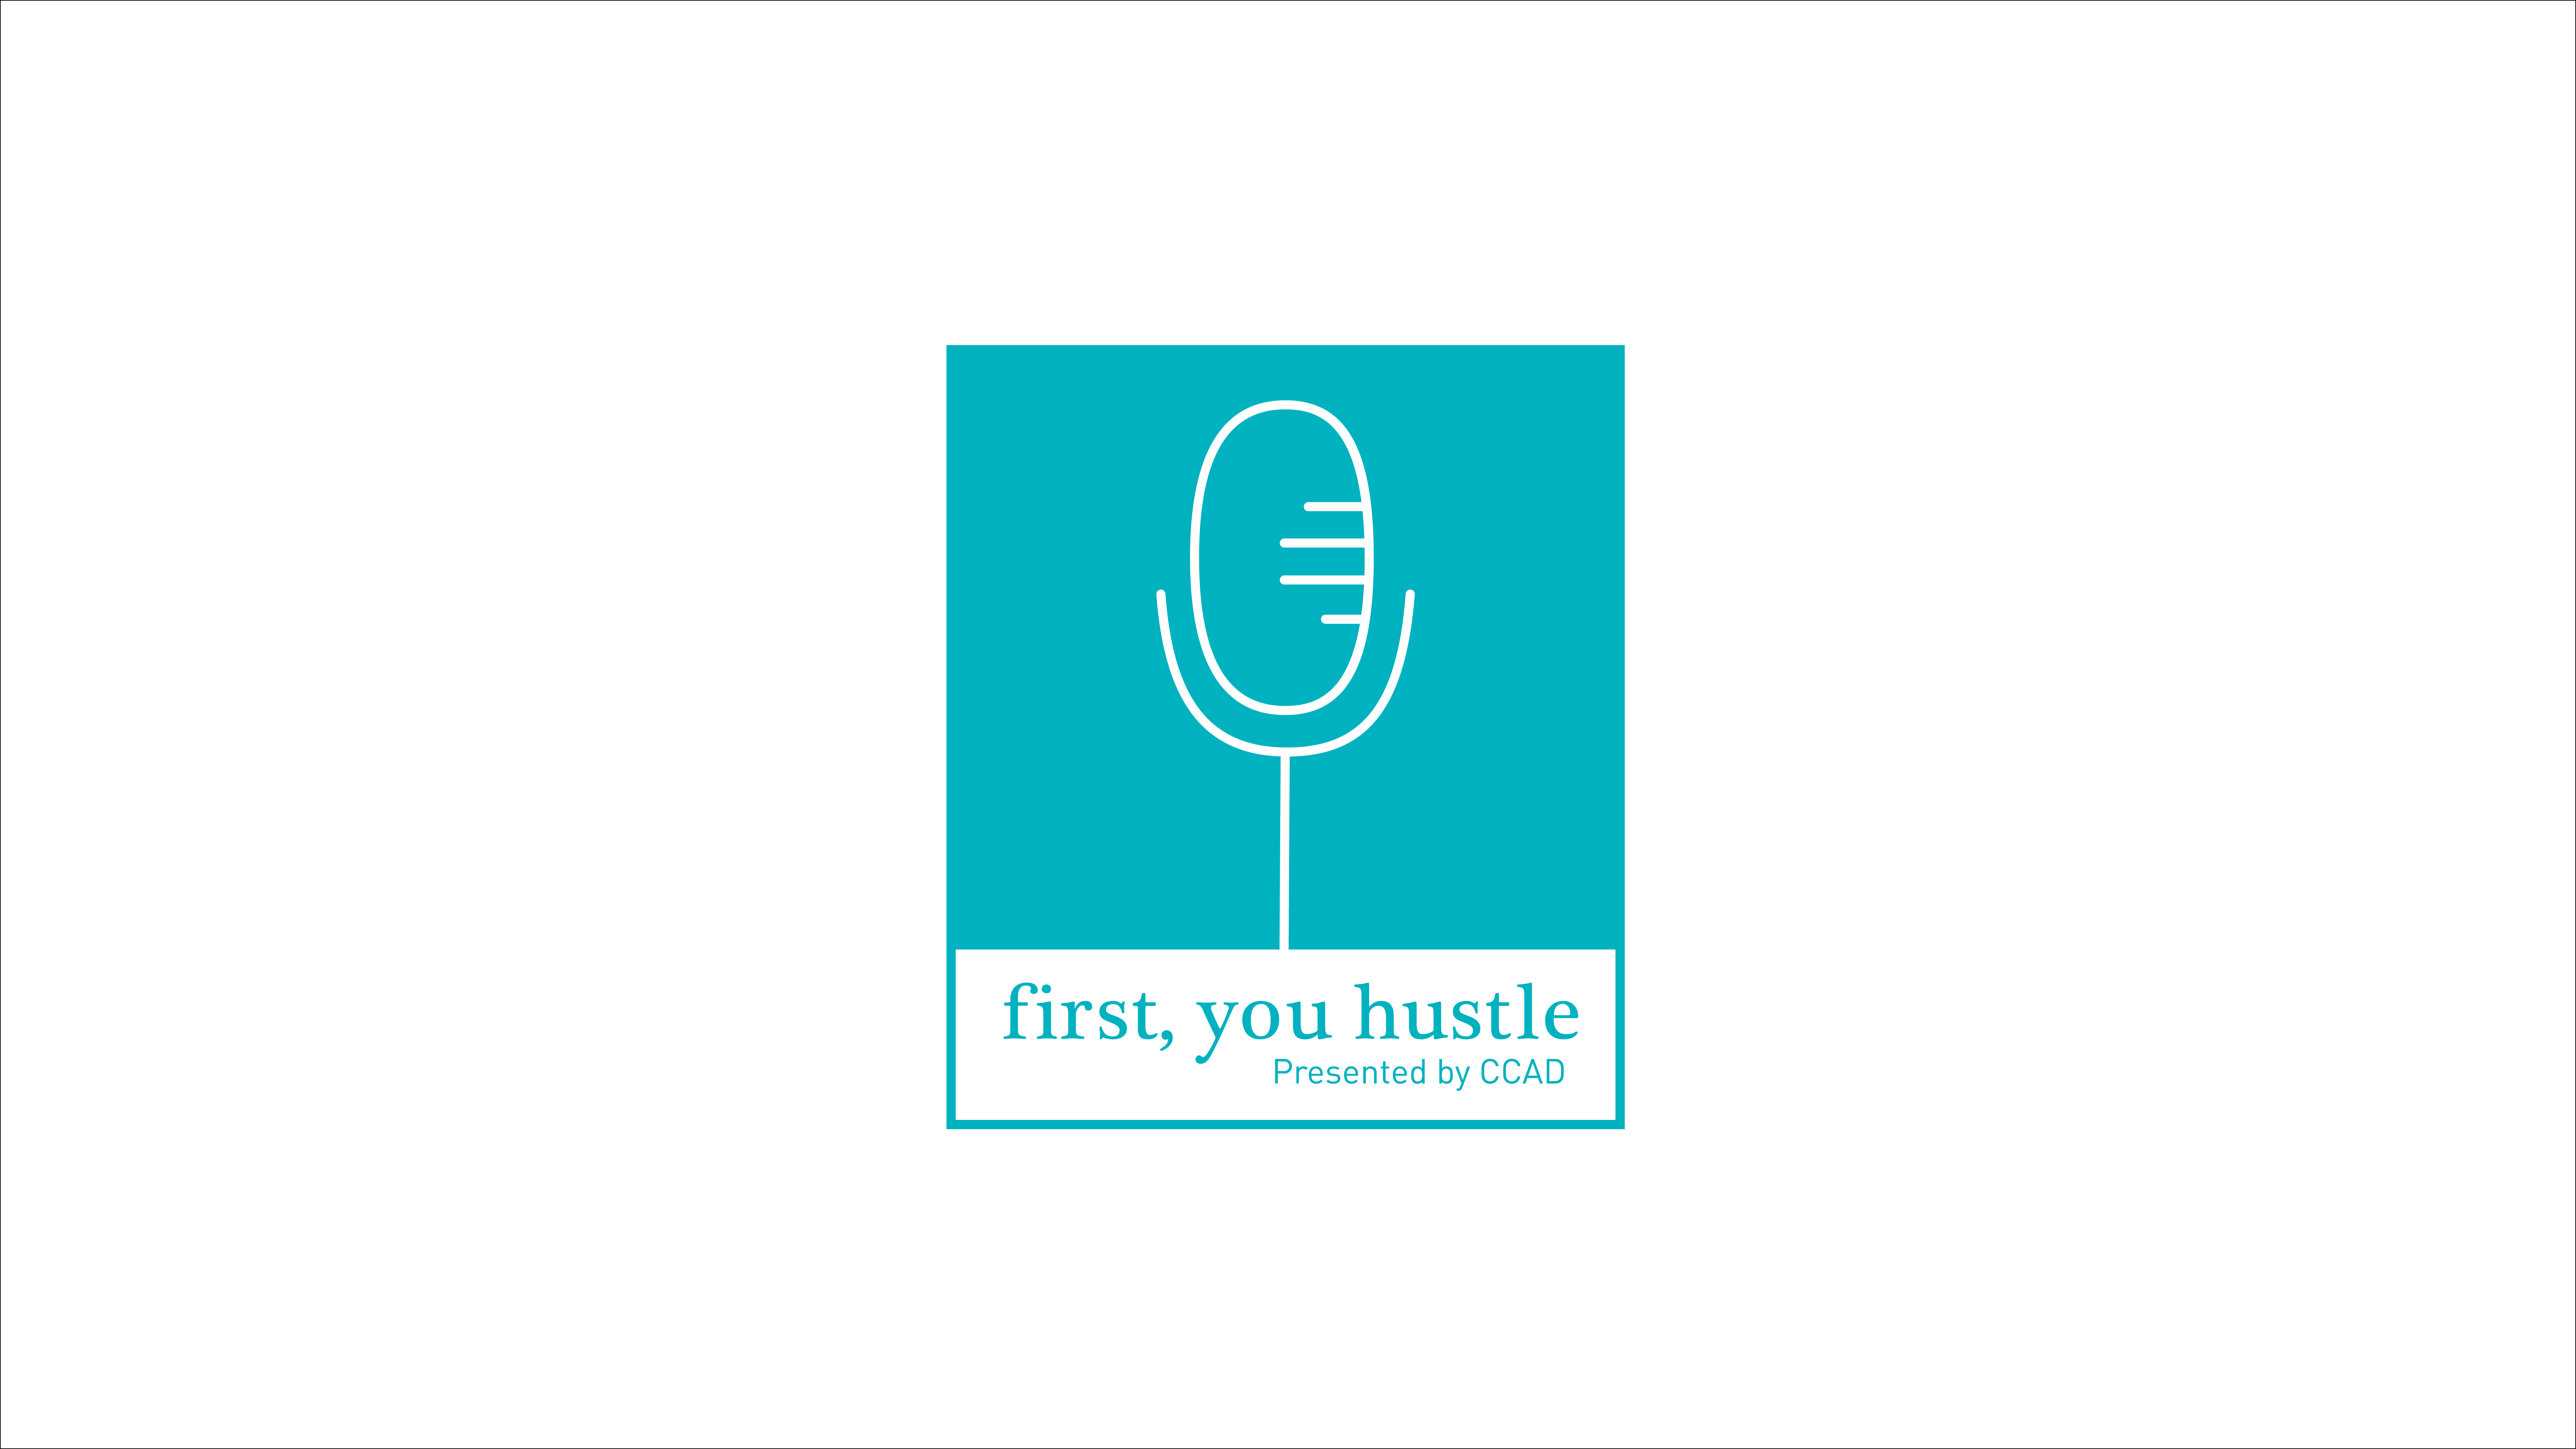 first you hustle